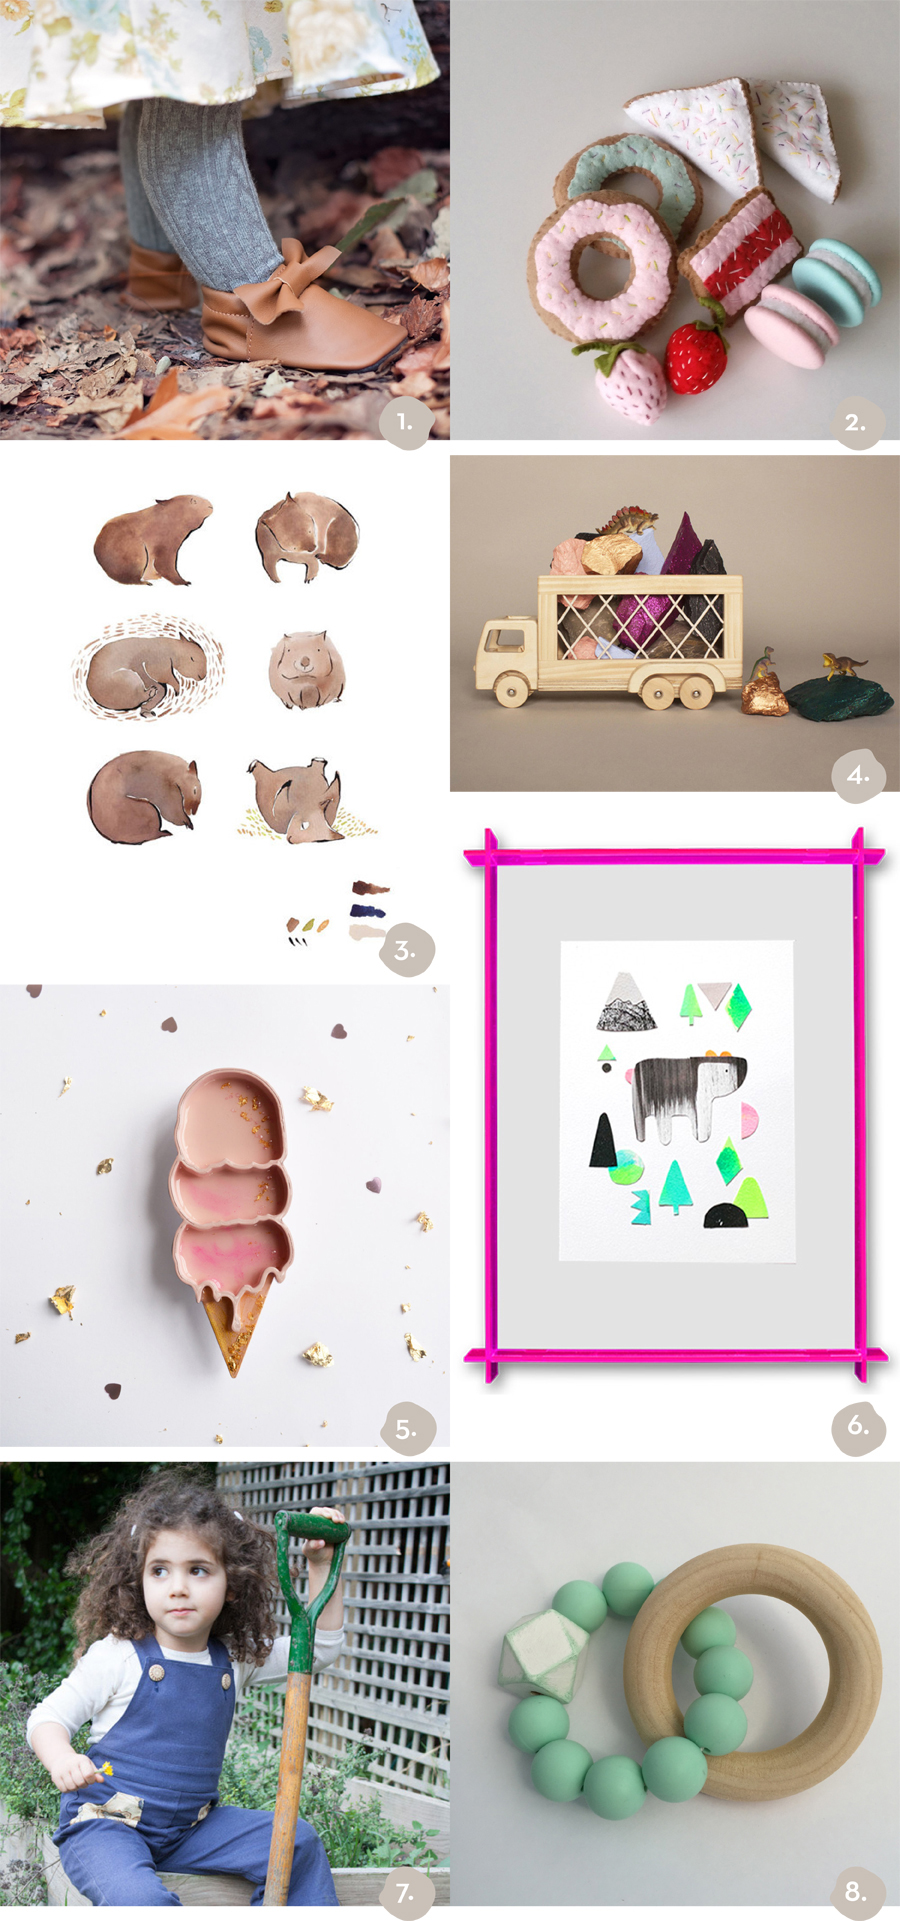 Blog-900x1200x-Gift-Guide-Highlights-ADEL-AW16-KIDS-a